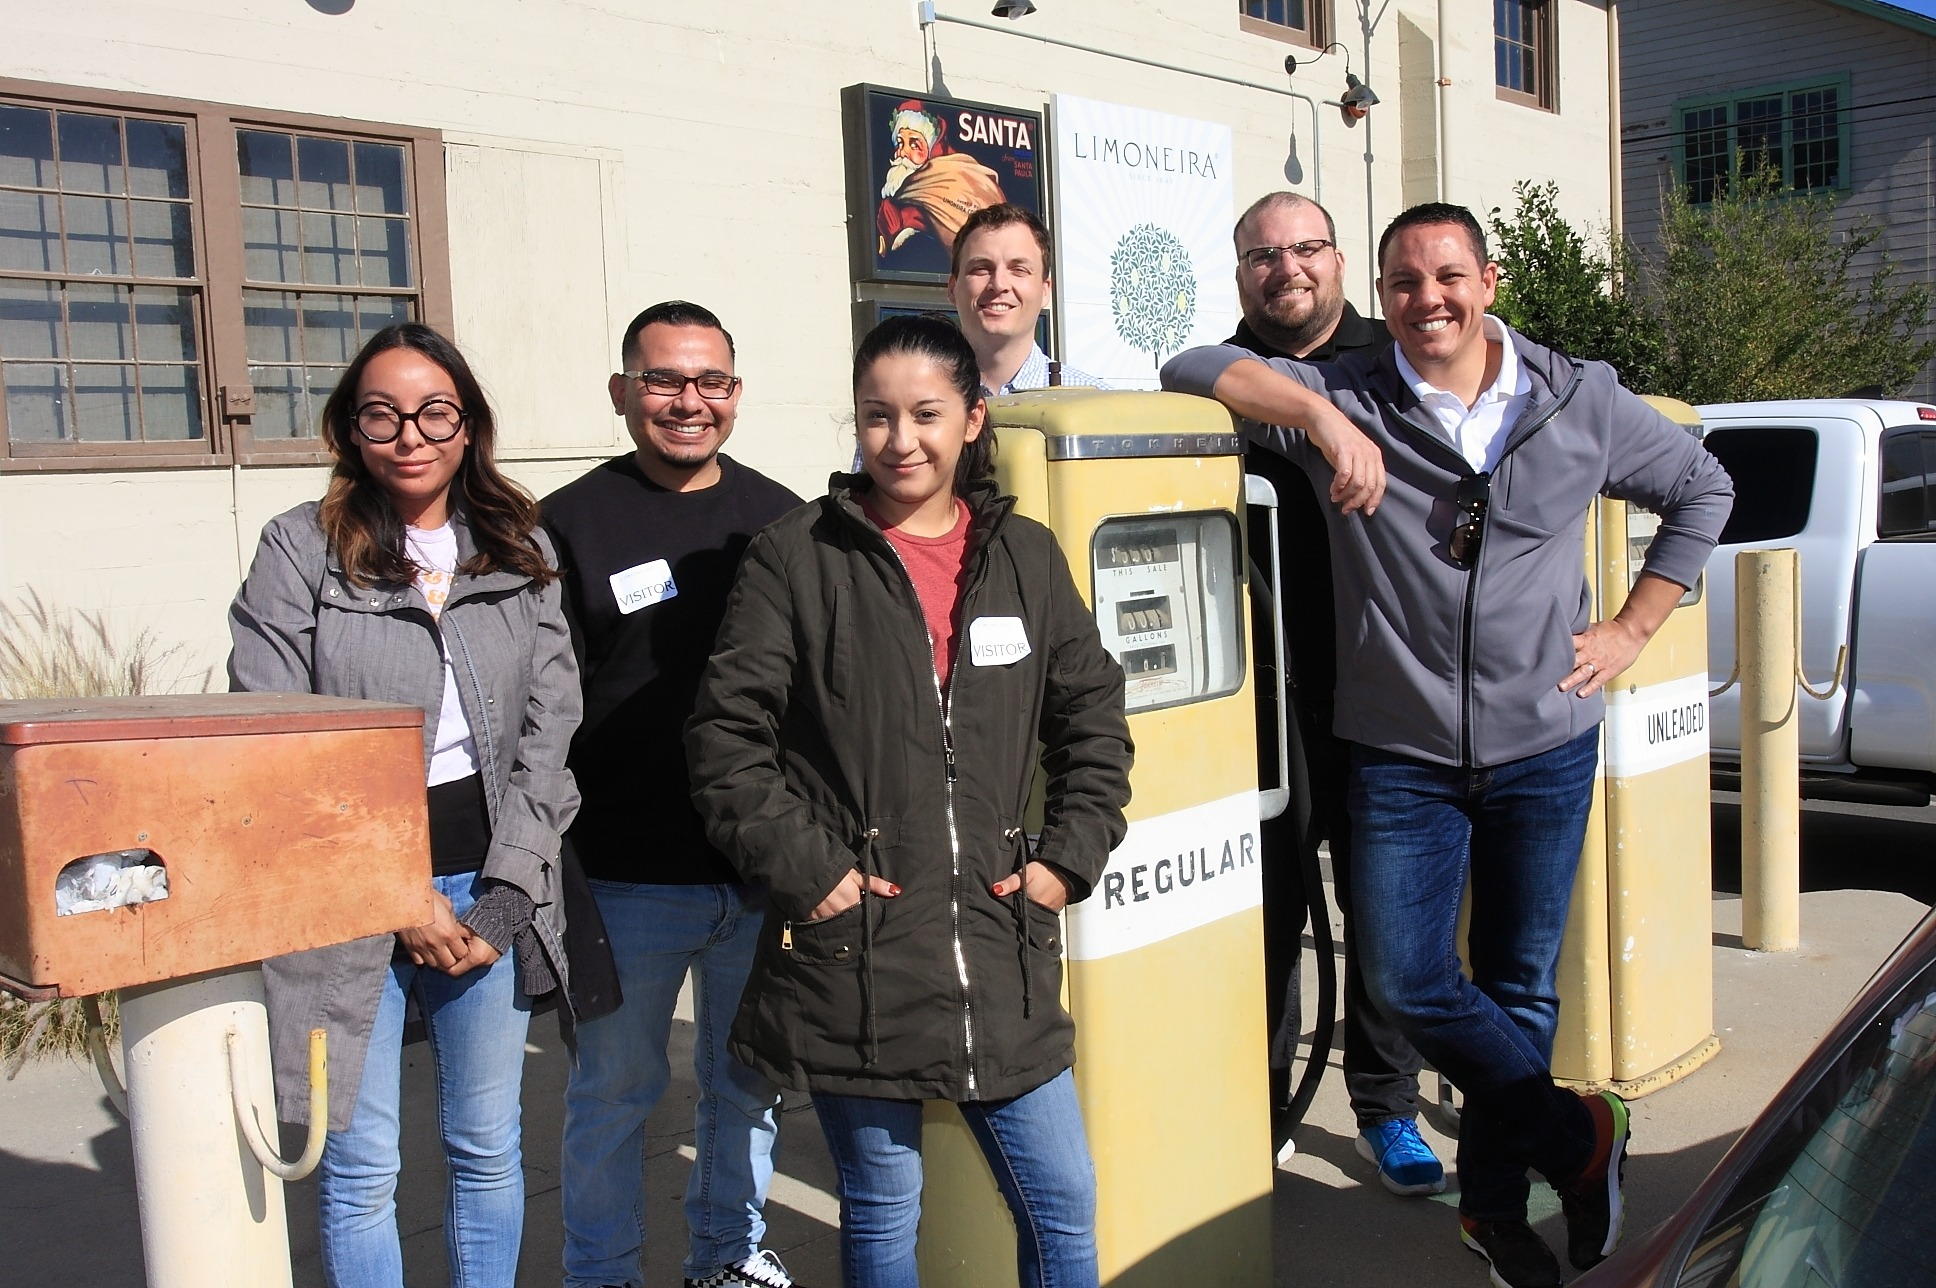 FPFC Apprentices Lizbeth Reyes, Jose Morales, Esmeralda Mejia, Kevin Trisko, Thomas Rossi, and Jeffrey Fish pose for a quick picture at Limoneira's Visitor Center.